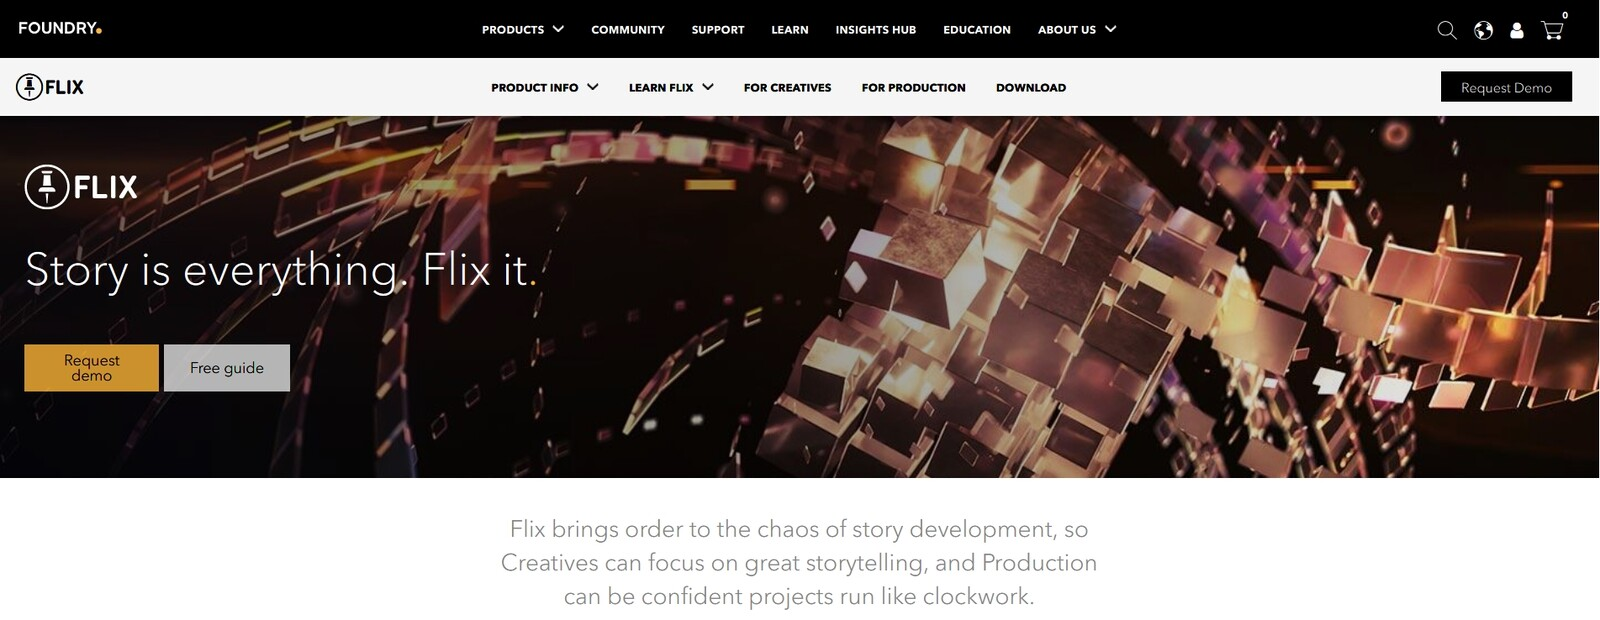 Foundry website with the image. Credits: Anna Luraghi (Foundry)